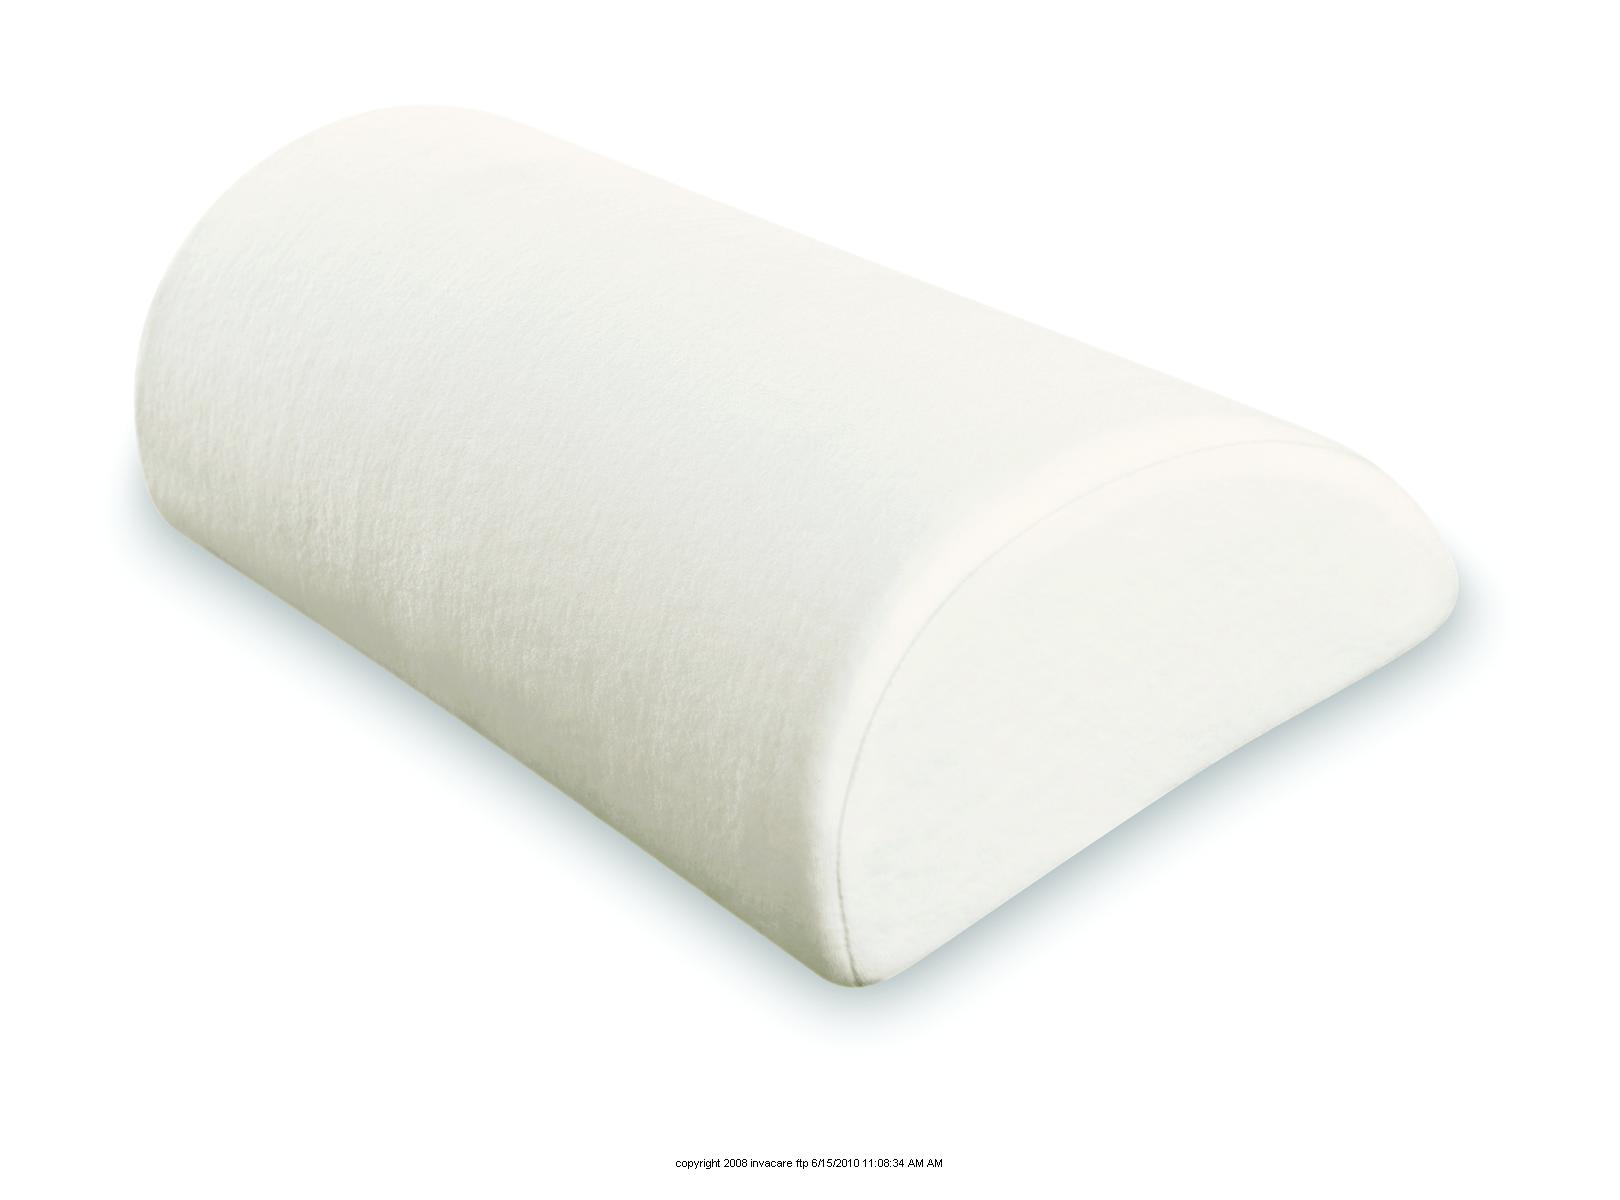 Obusforme Specialty Memory Foam Pillows, The 4 Position Pillow, (1 EACH)